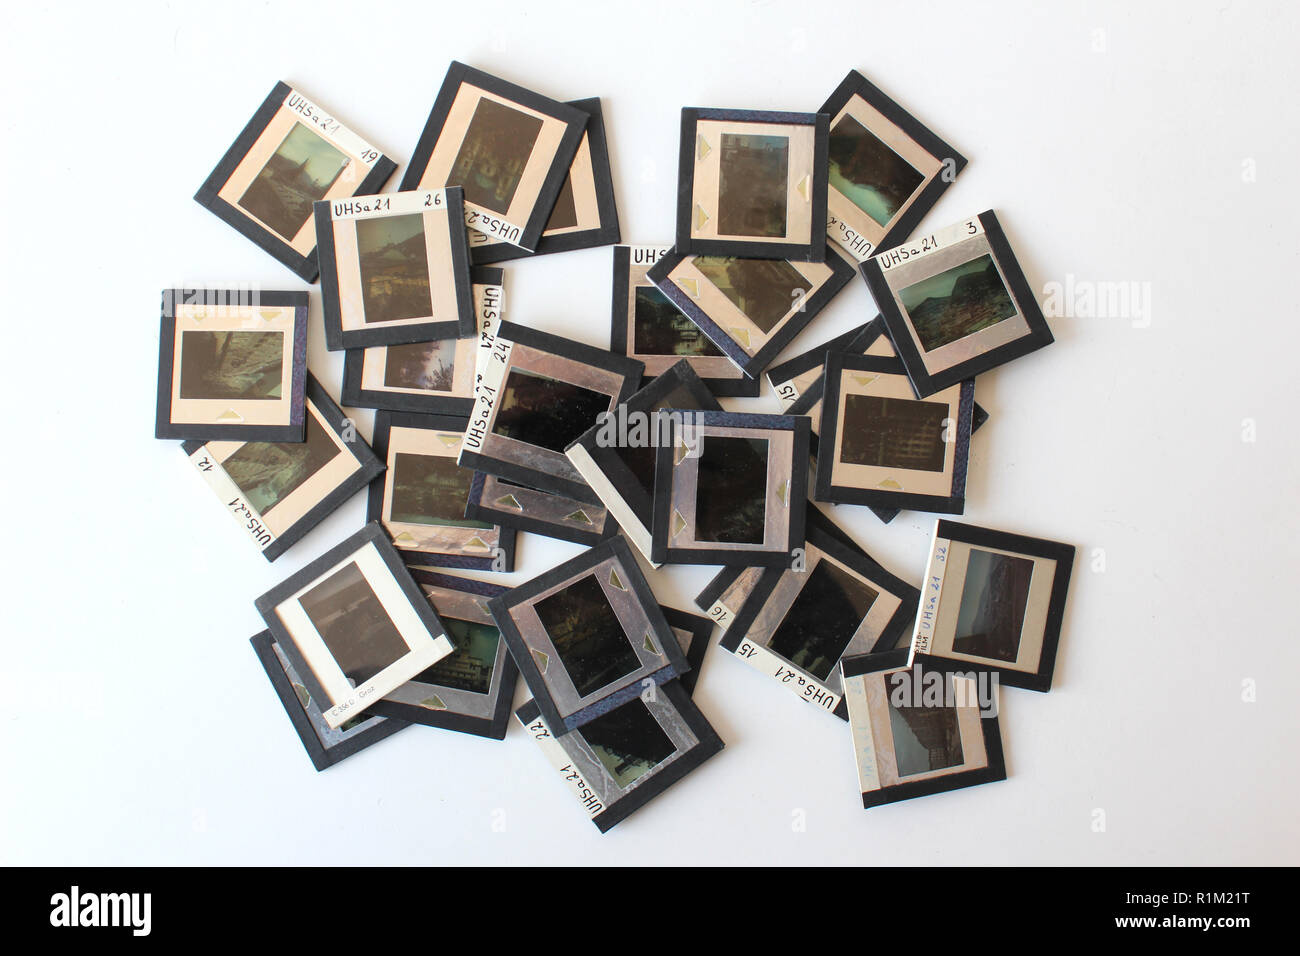 Group of 35mm slides isolated on a white background - Stock Image